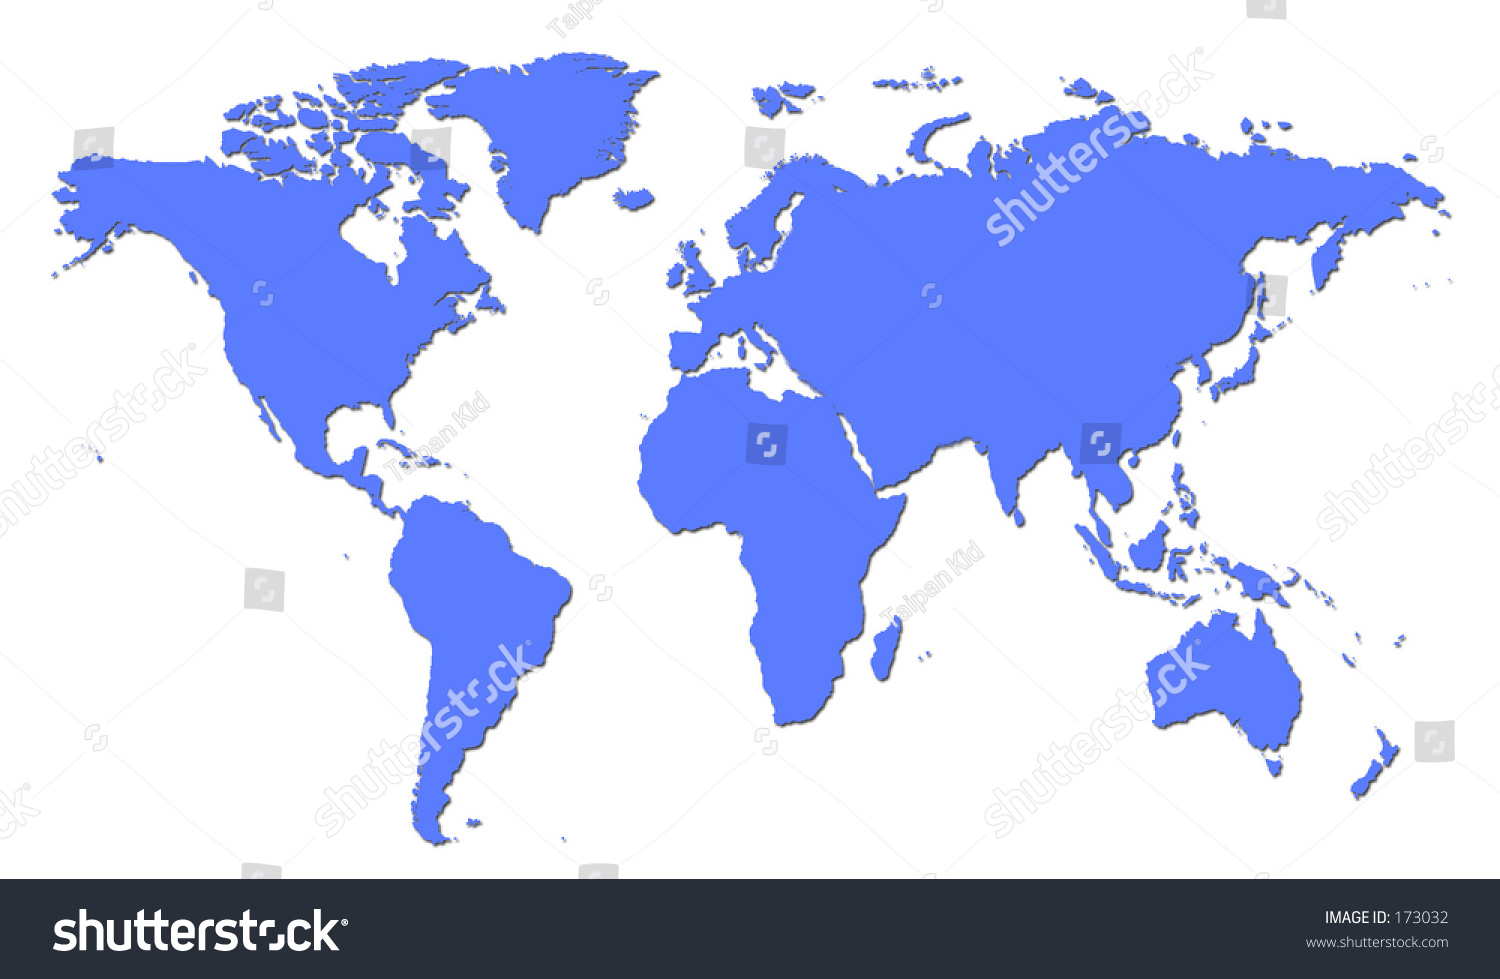 Plain blue world map stock illustration 173032 shutterstock gumiabroncs Image collections